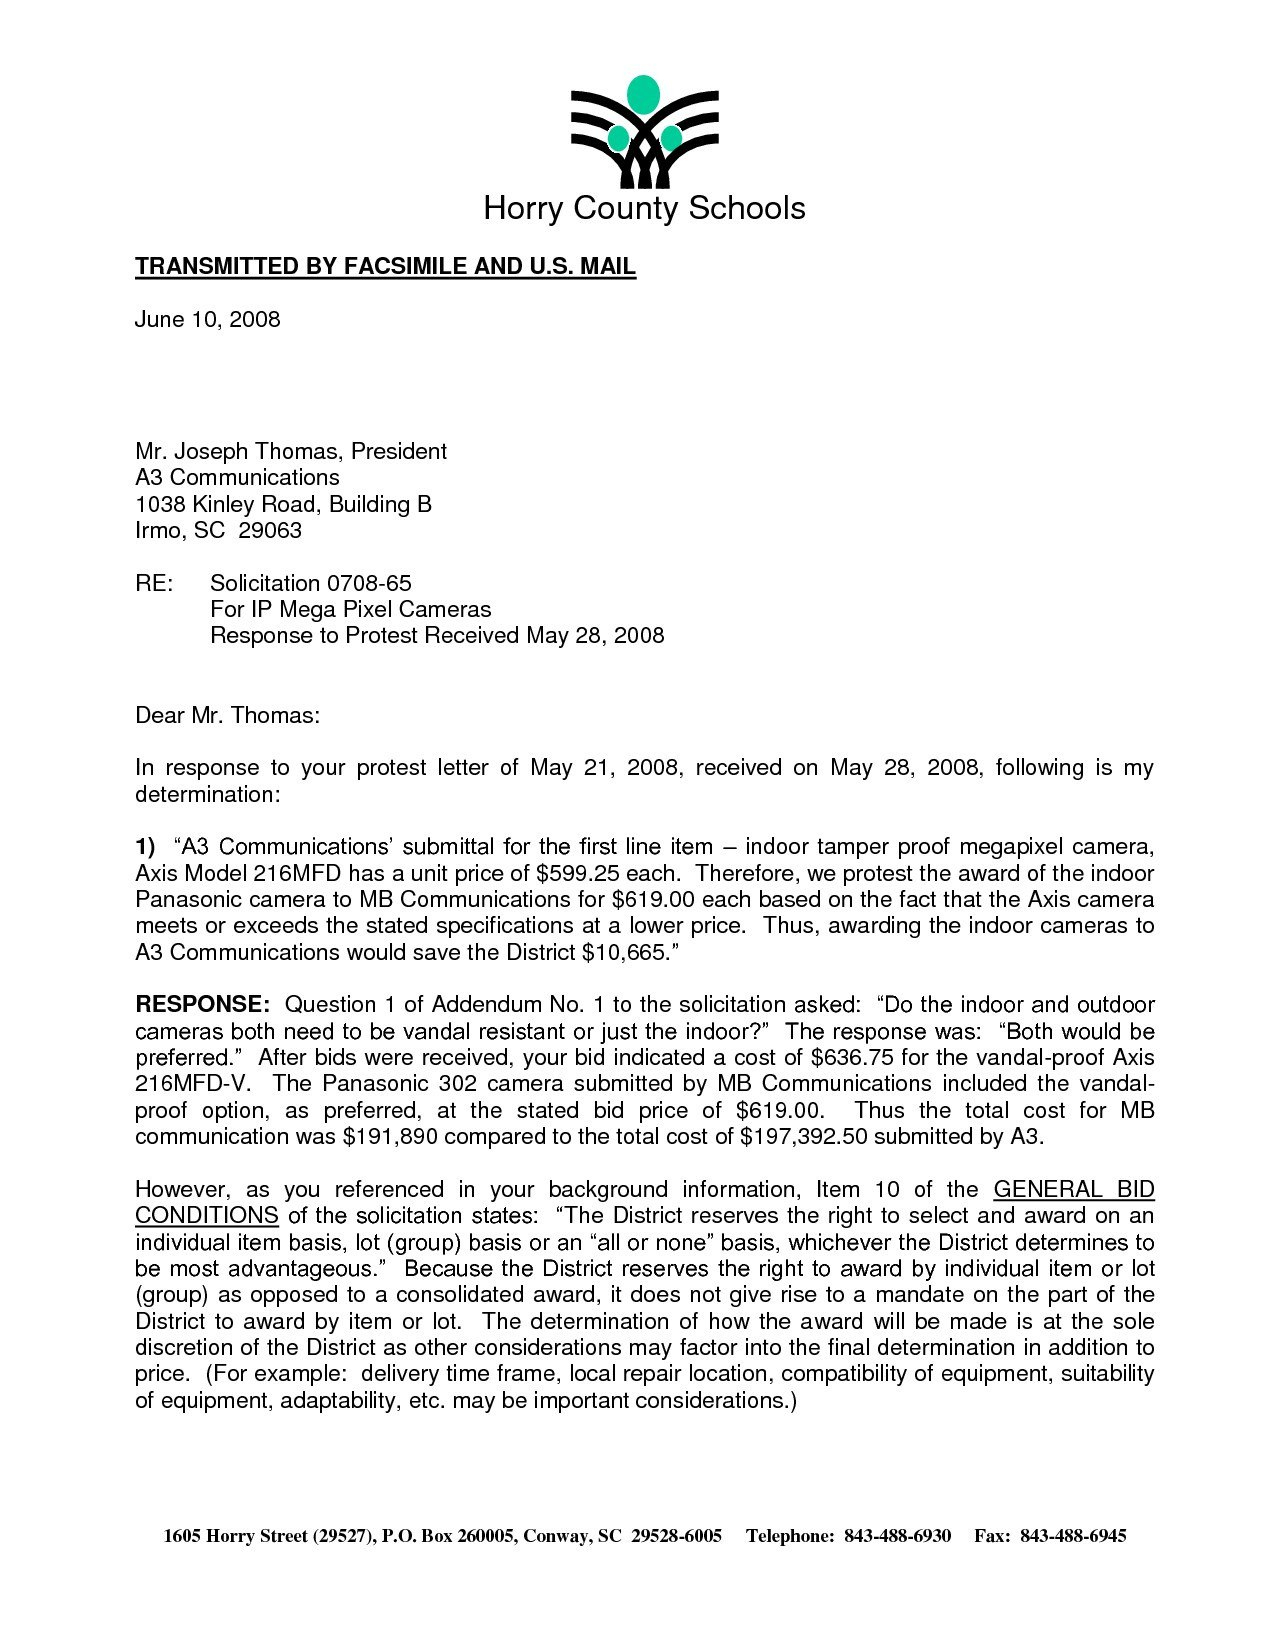 Irs Appeal Letter Sample  Demozaiektuin For Irs Response Letter Template